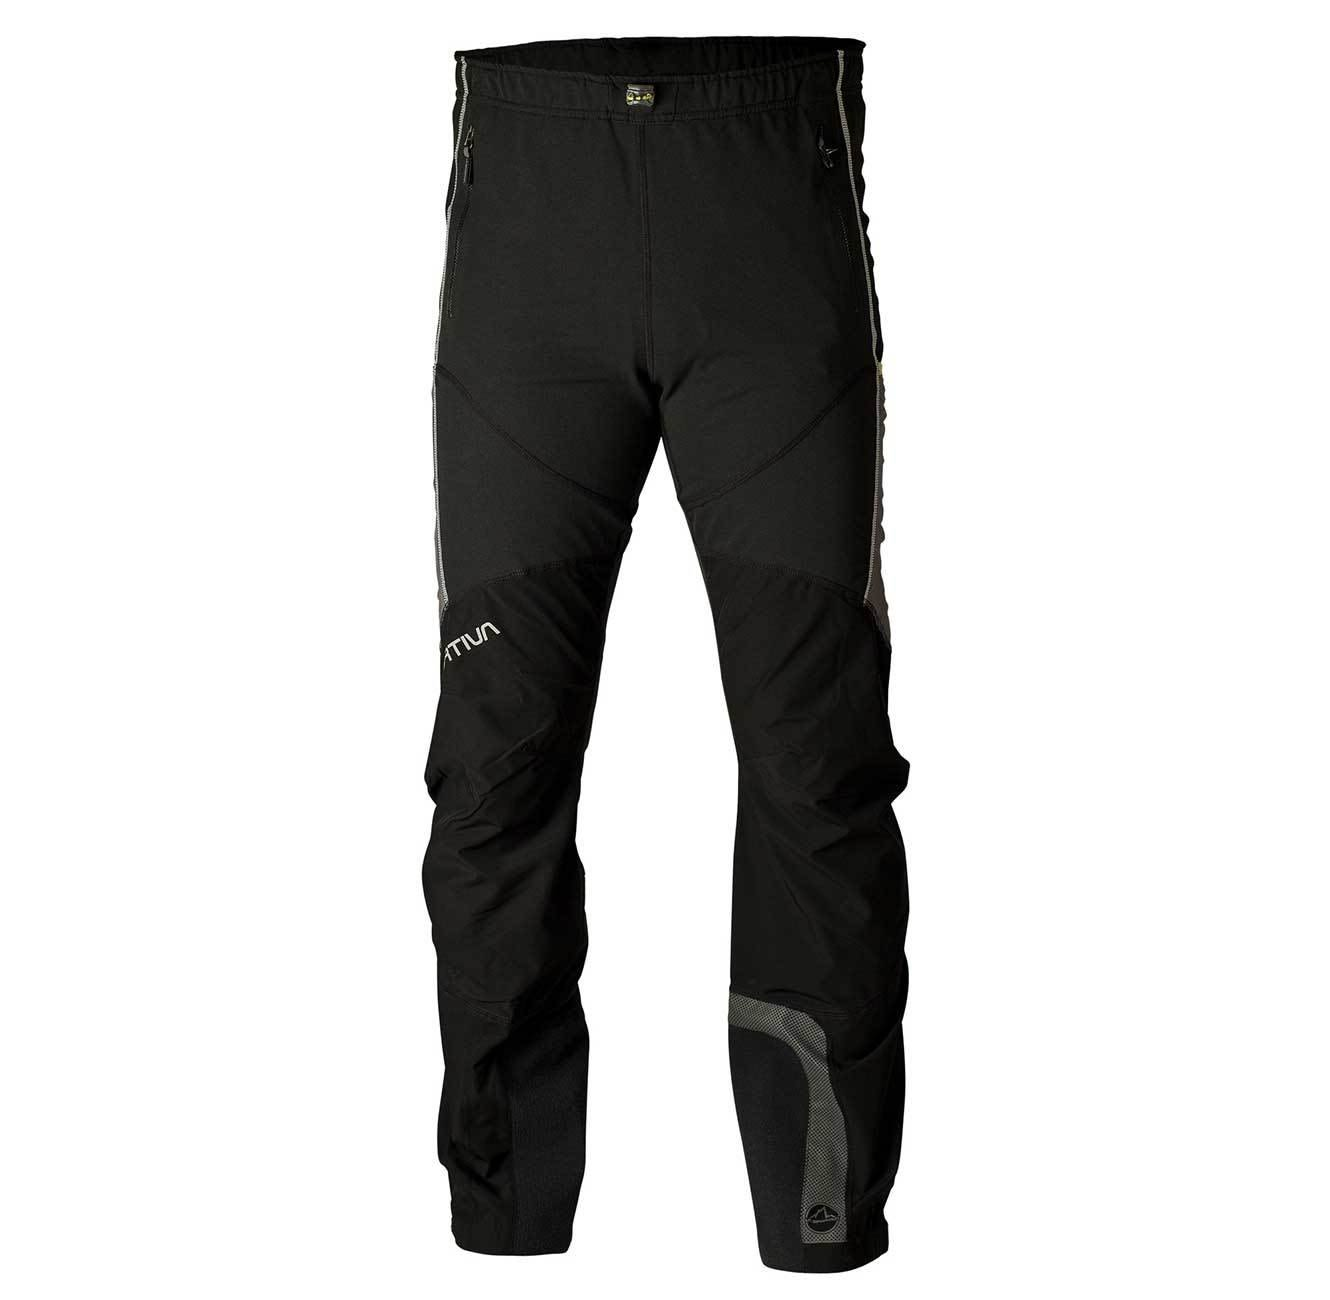 La Sportiva Solid Pant Schwarz, Male Hose, Mens -Regular